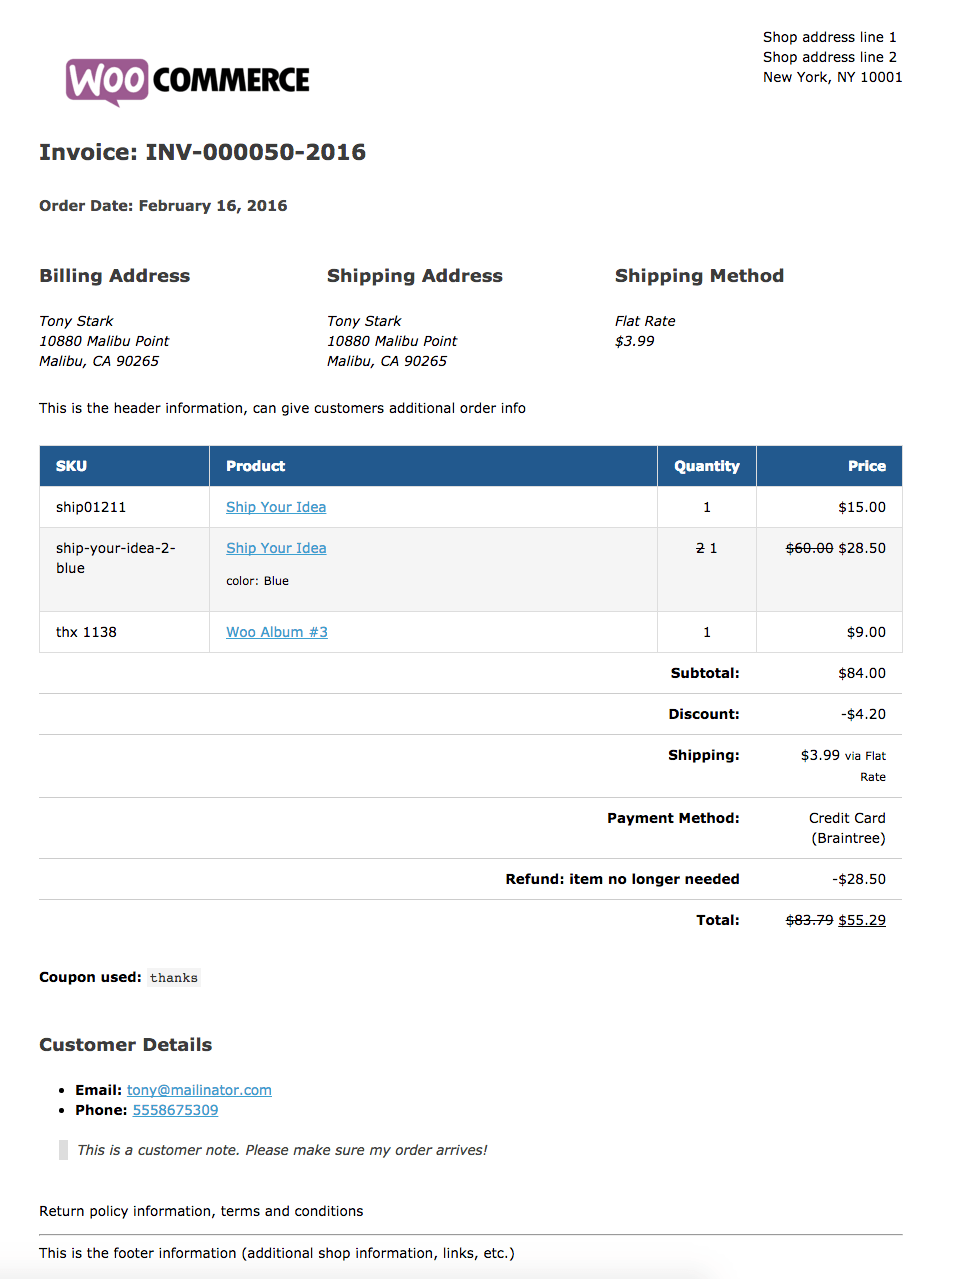 Adoringacklesus  Winning Print Invoices Amp Packing Lists  Woocommerce With Foxy View A Sample Invoice  With Alluring Create Online Invoice Also Ebay Seller Invoice In Addition Difference Between Invoice And Msrp And Free Printable Invoice Form As Well As My Deluxe Invoices And Estimates Additionally Gmc Acadia Invoice Price From Woocommercecom With Adoringacklesus  Foxy Print Invoices Amp Packing Lists  Woocommerce With Alluring View A Sample Invoice  And Winning Create Online Invoice Also Ebay Seller Invoice In Addition Difference Between Invoice And Msrp From Woocommercecom